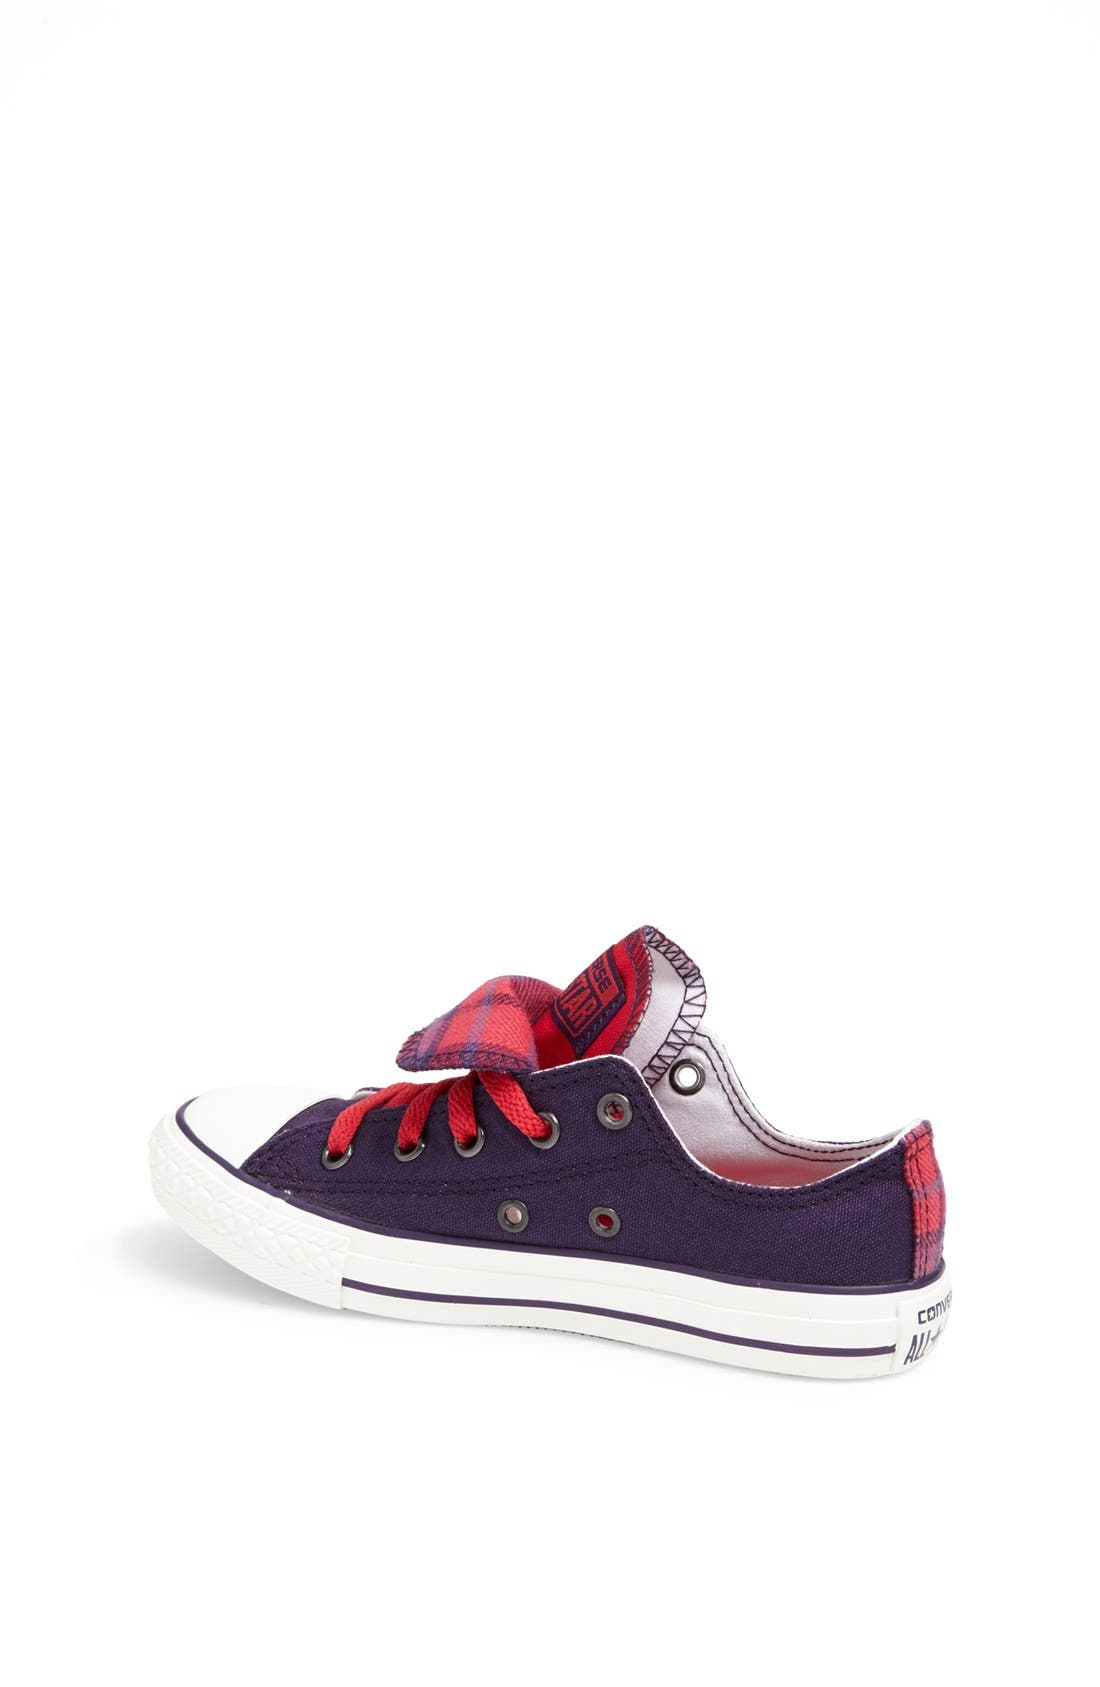 Alternate Image 2  - Converse Chuck Taylor® All Star® Double Tongue Sneaker (Toddler, Little Kid & Big Kid)